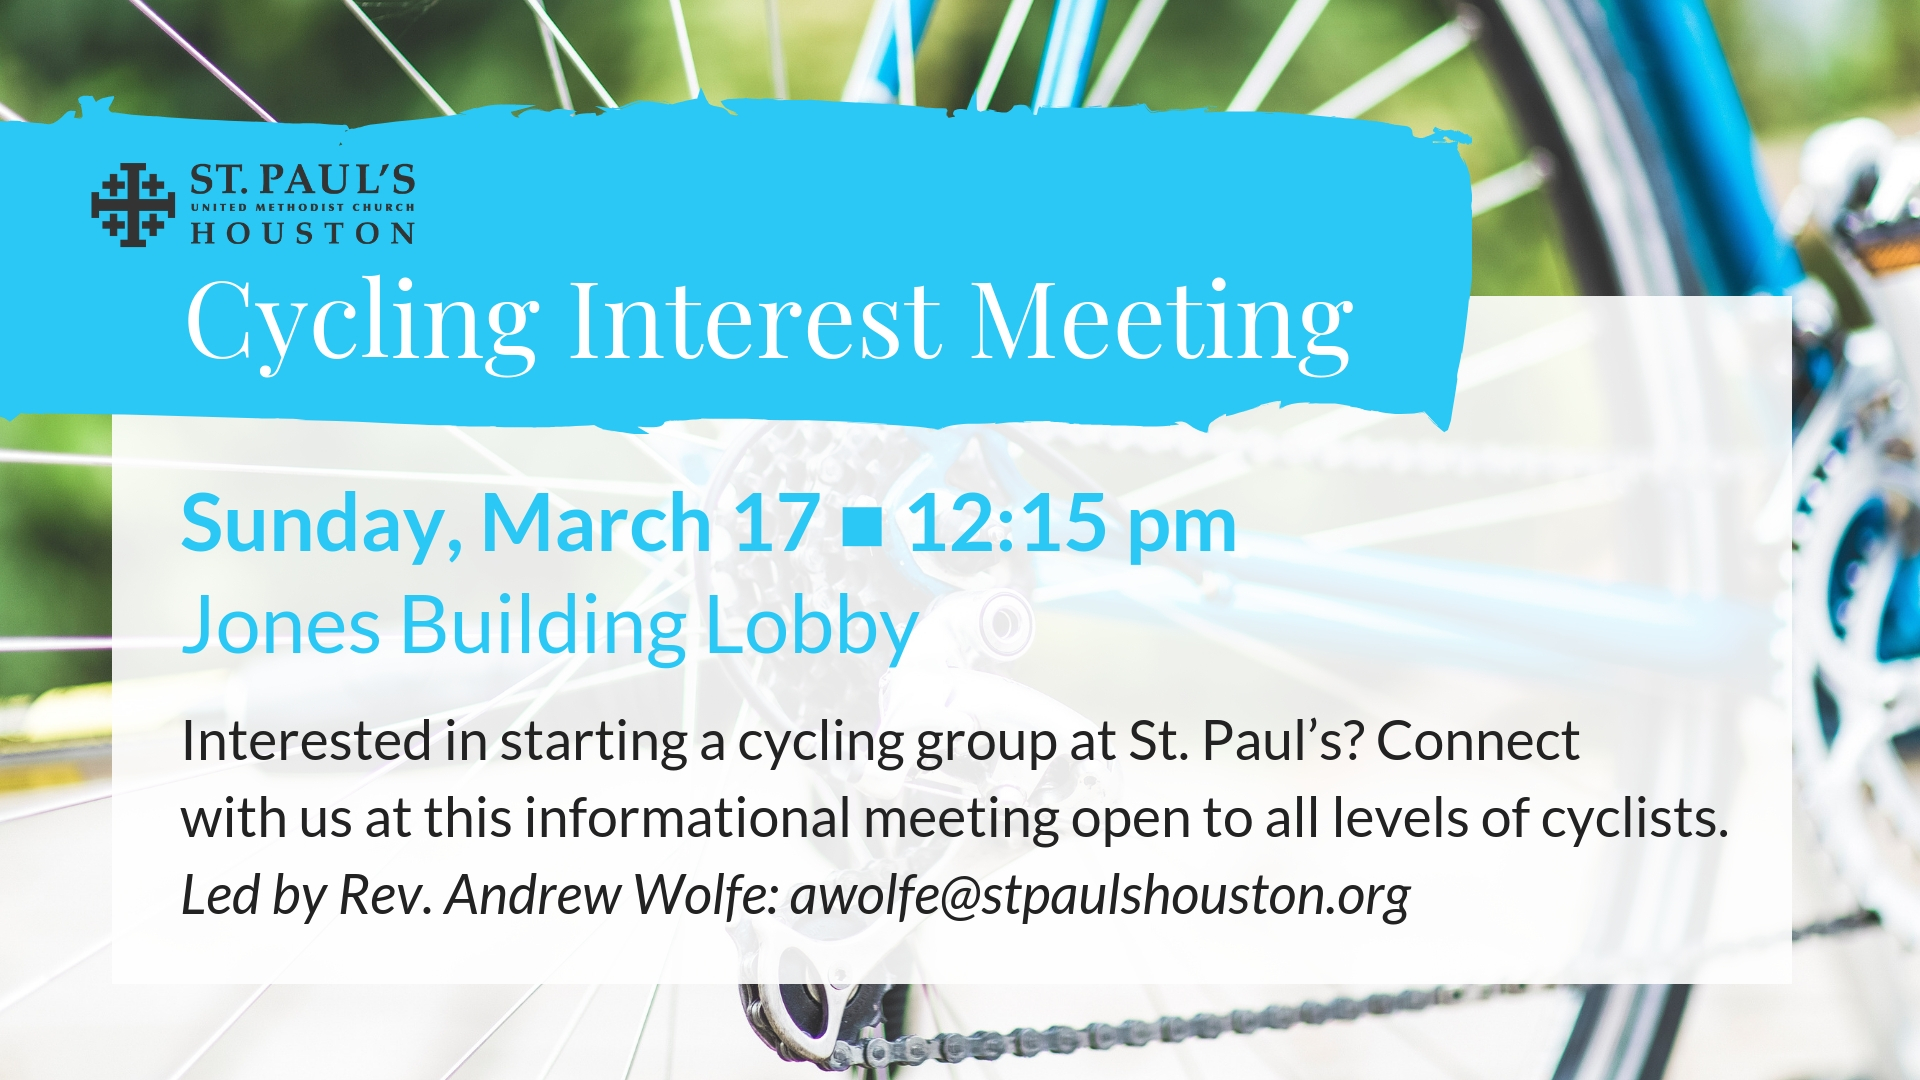 16x9 Interest cycling interest meeting.jpg